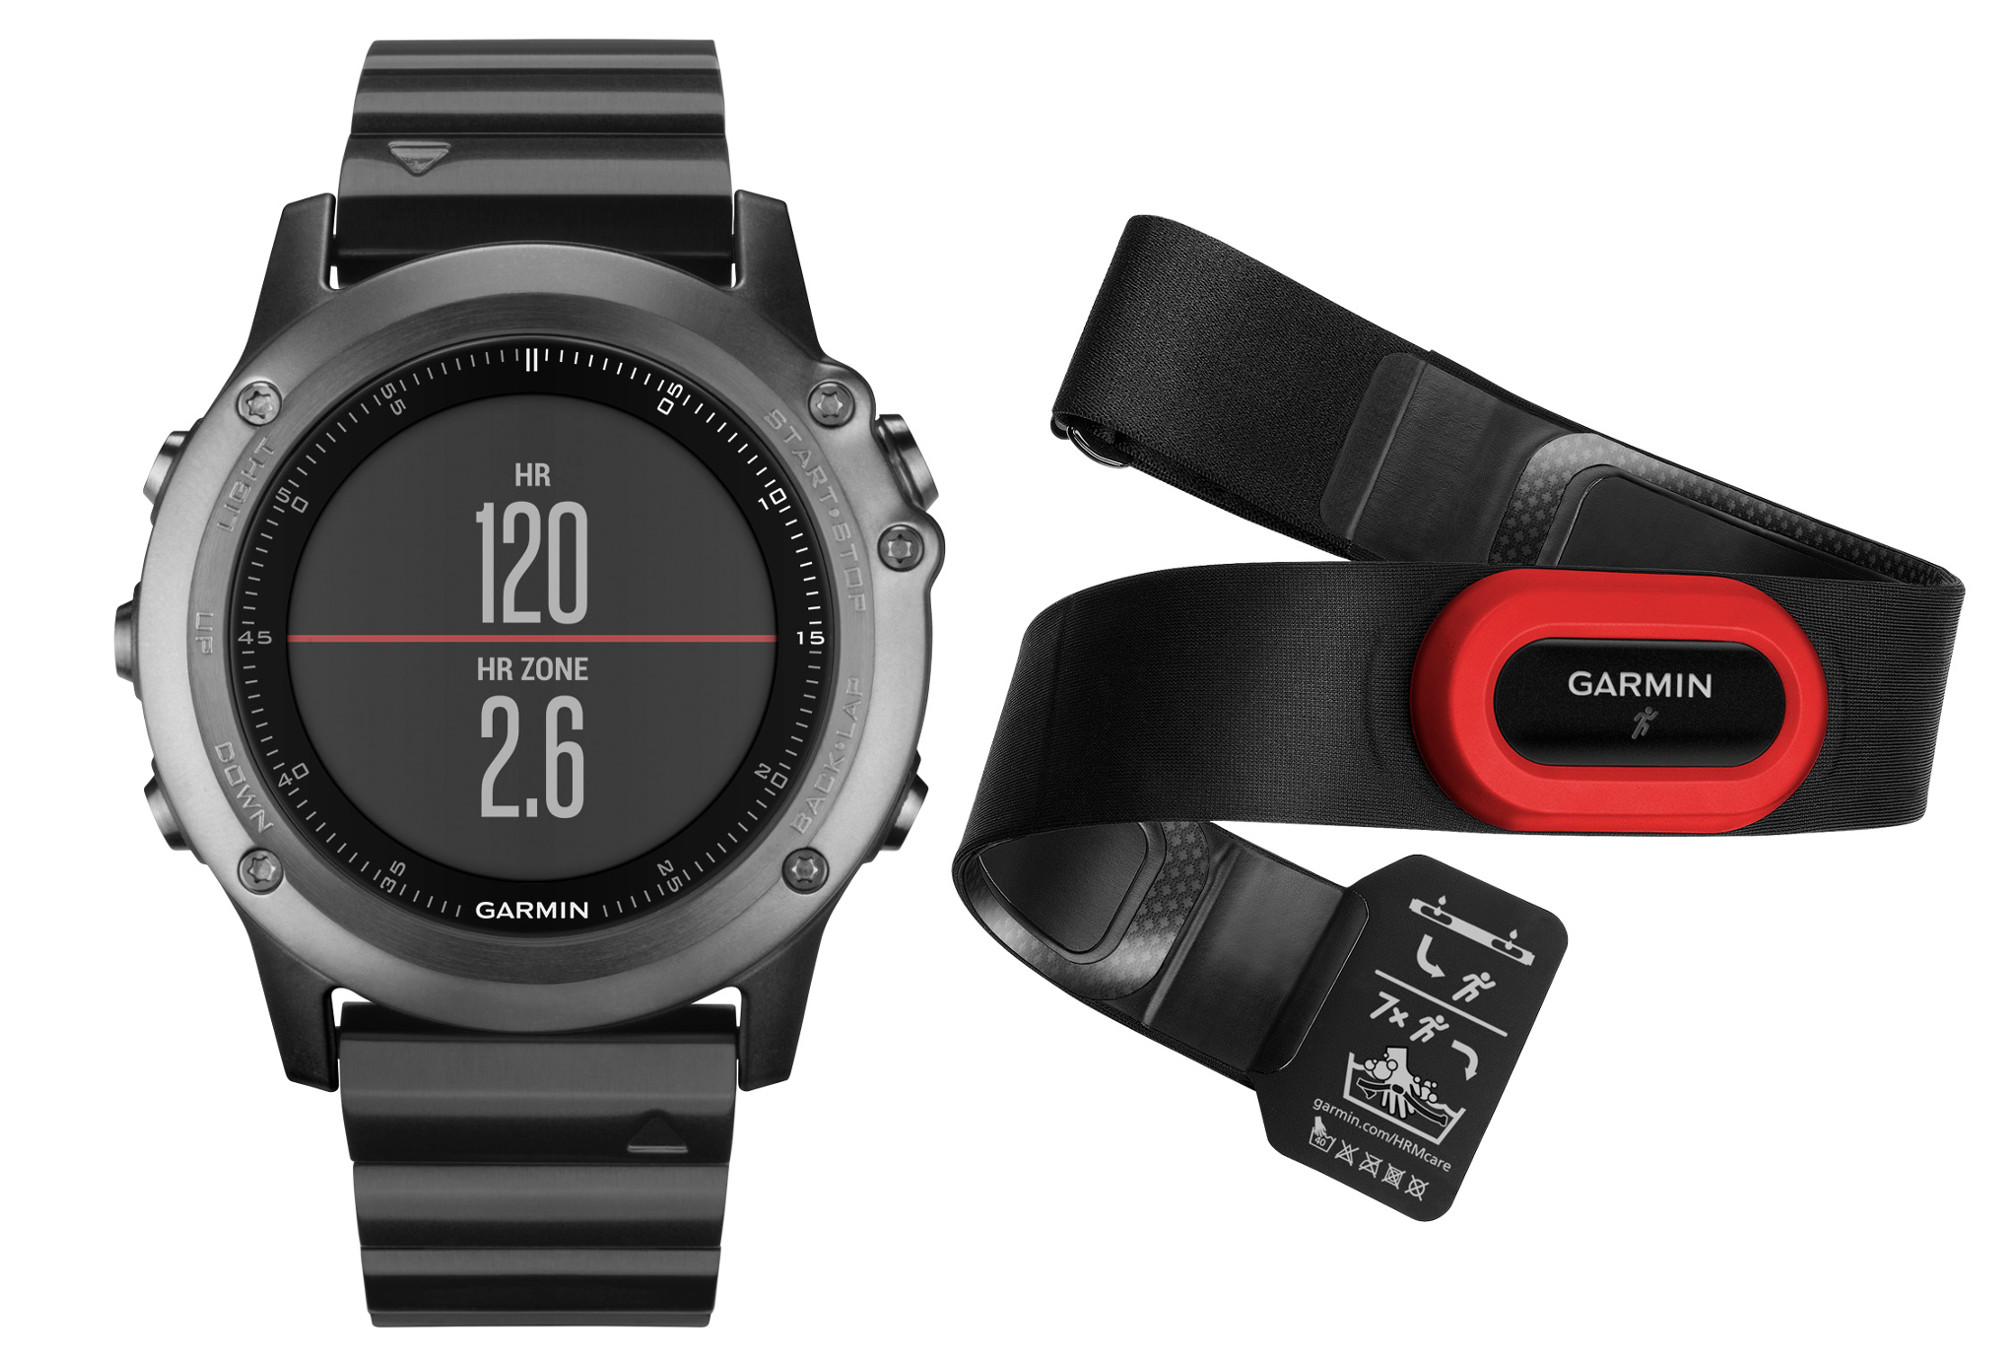 montre gps garmin fenix 3 performer hrm gris. Black Bedroom Furniture Sets. Home Design Ideas